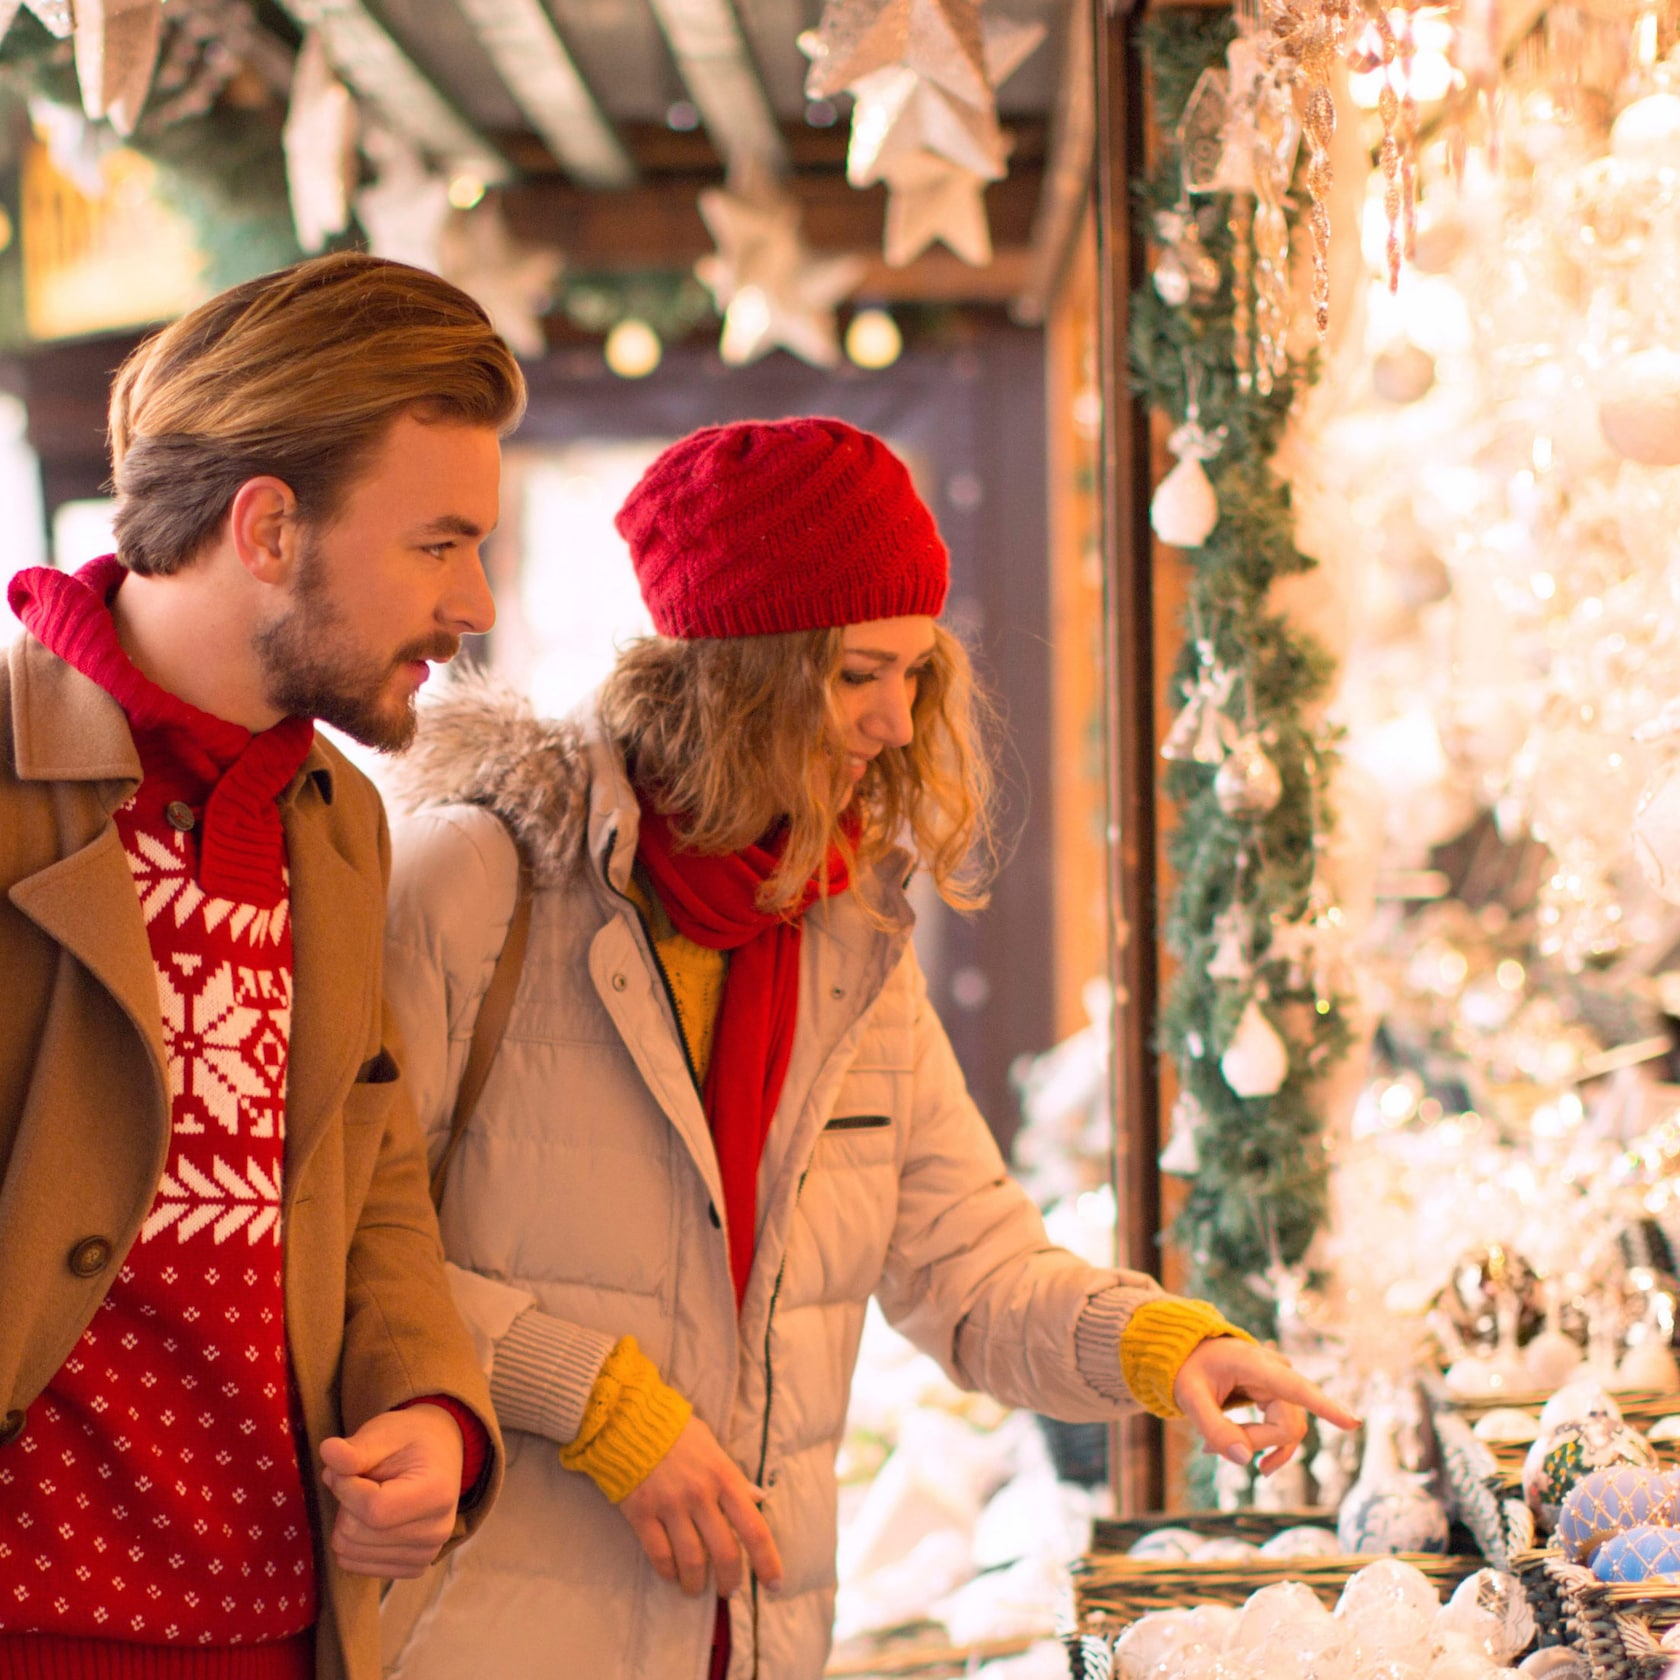 A man and woman look at delicate ornaments at a Christmas Market